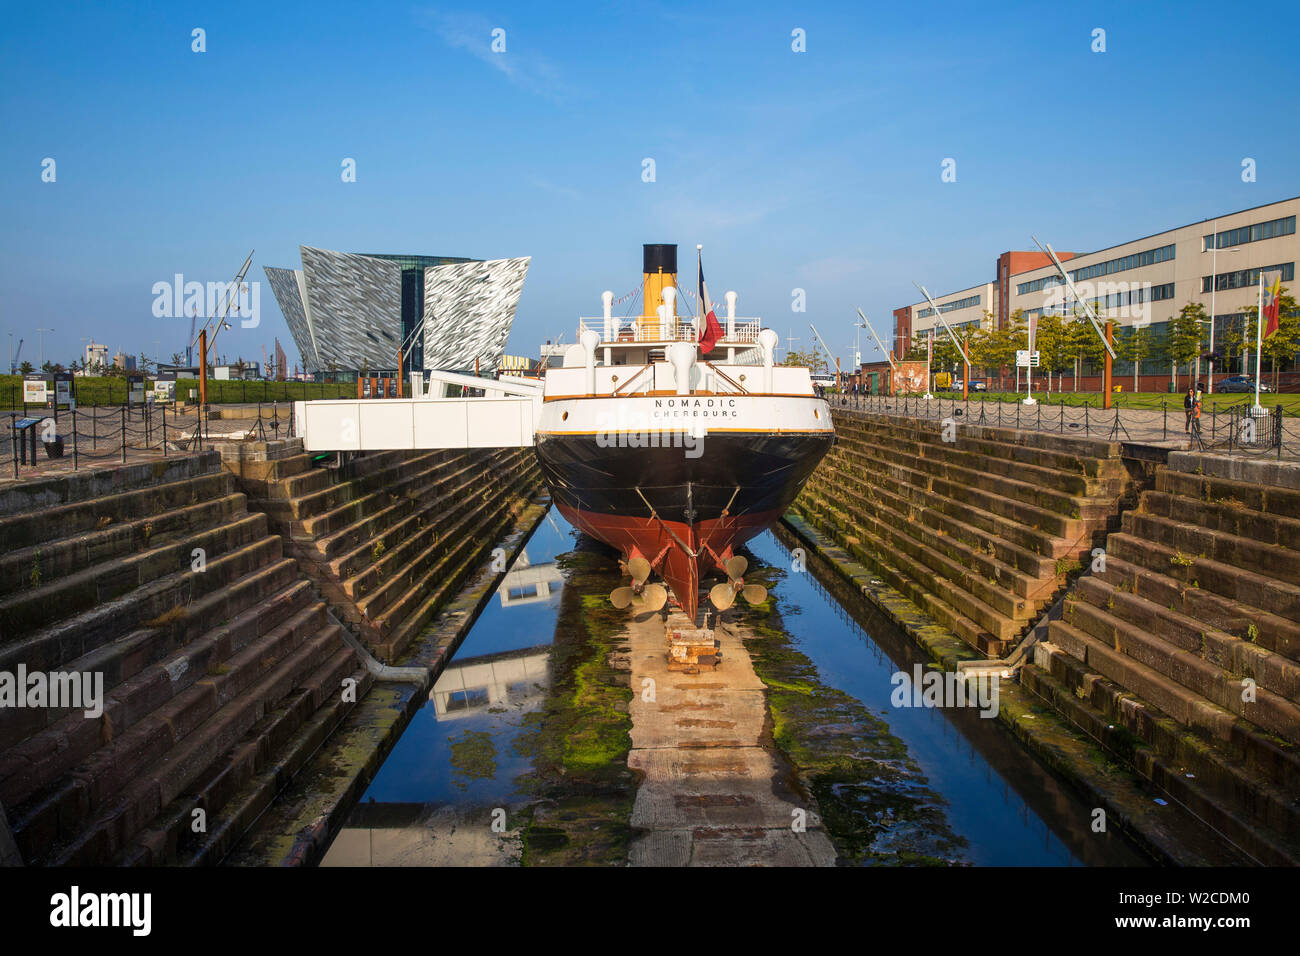 United Kingdom, Northern Ireland, Belfast, The SS Nomadic - Tender to the Titanic and the last remaining White Star Line ship infront of the Titanic Belfast museum - Stock Image